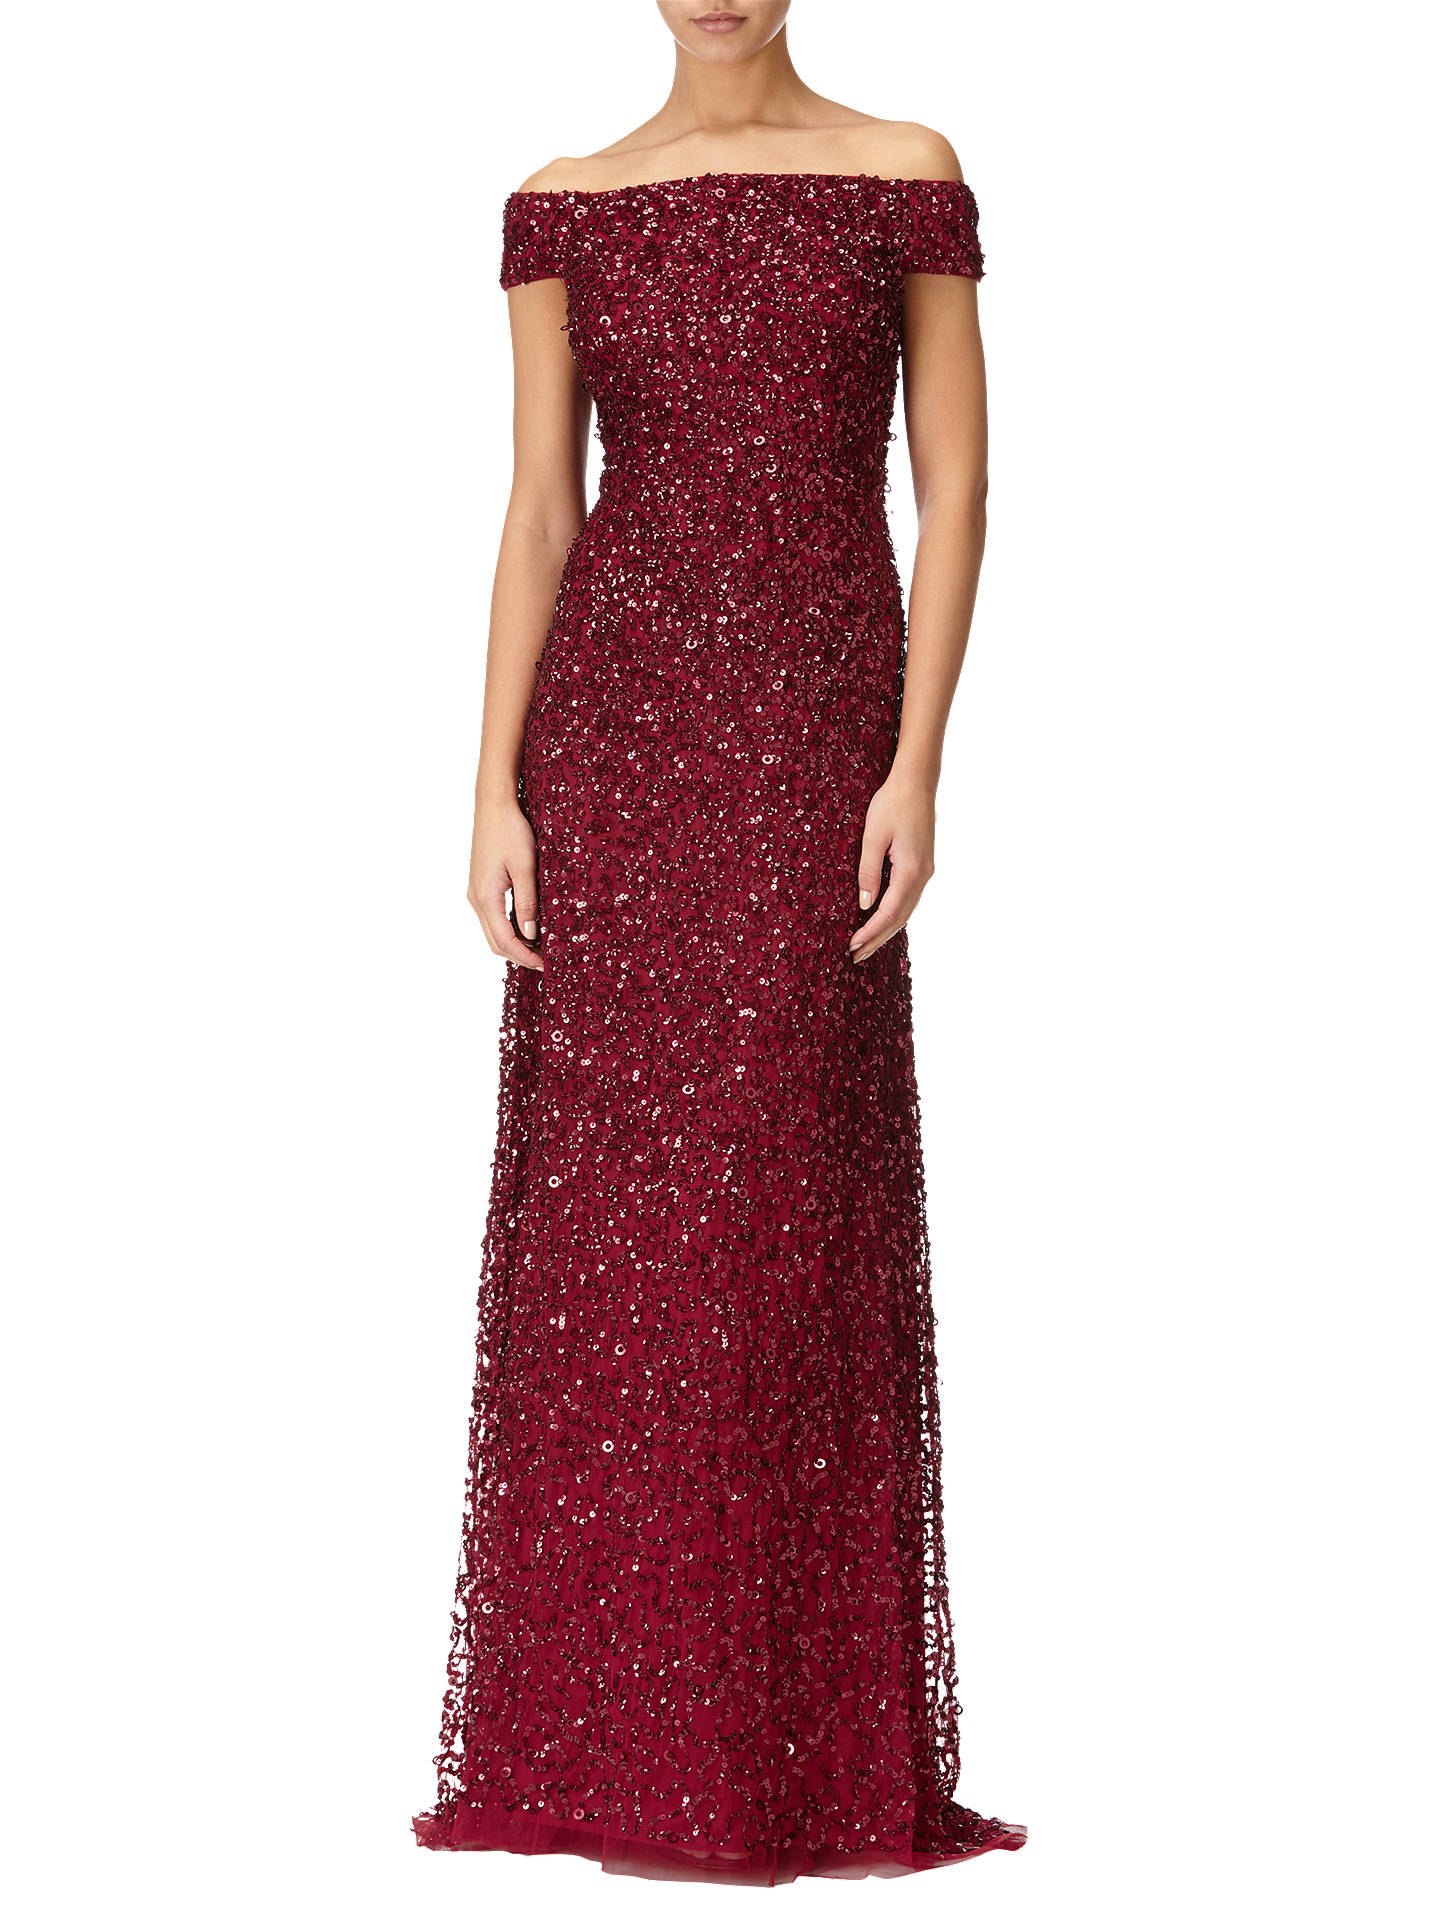 Adrianna Papell Off Shoulder Beaded Gown Cranberry At John Lewis